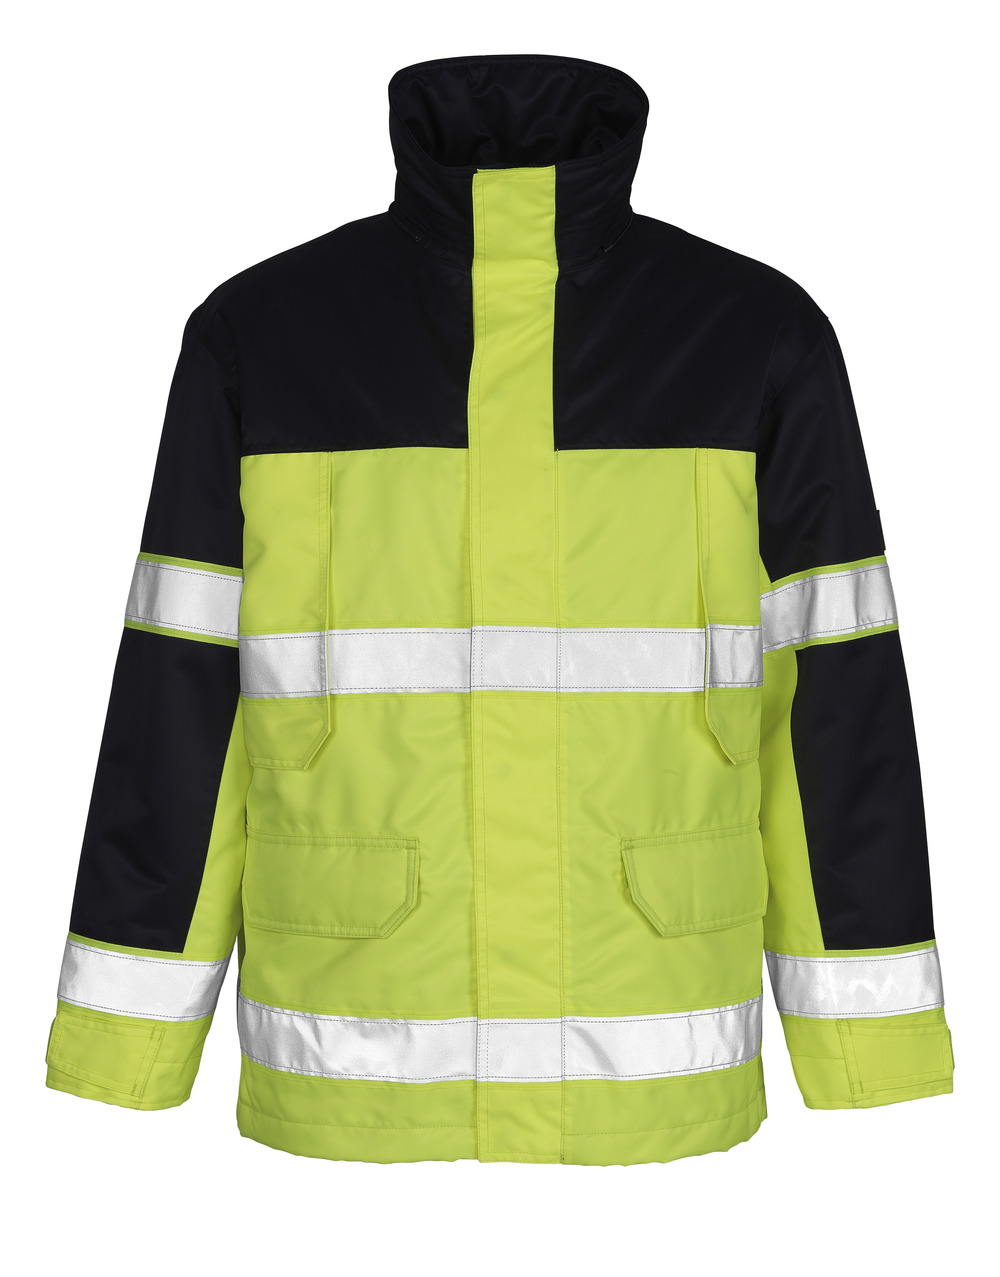 00930-880-171 Parka Jacket - hi-vis yellow/navy